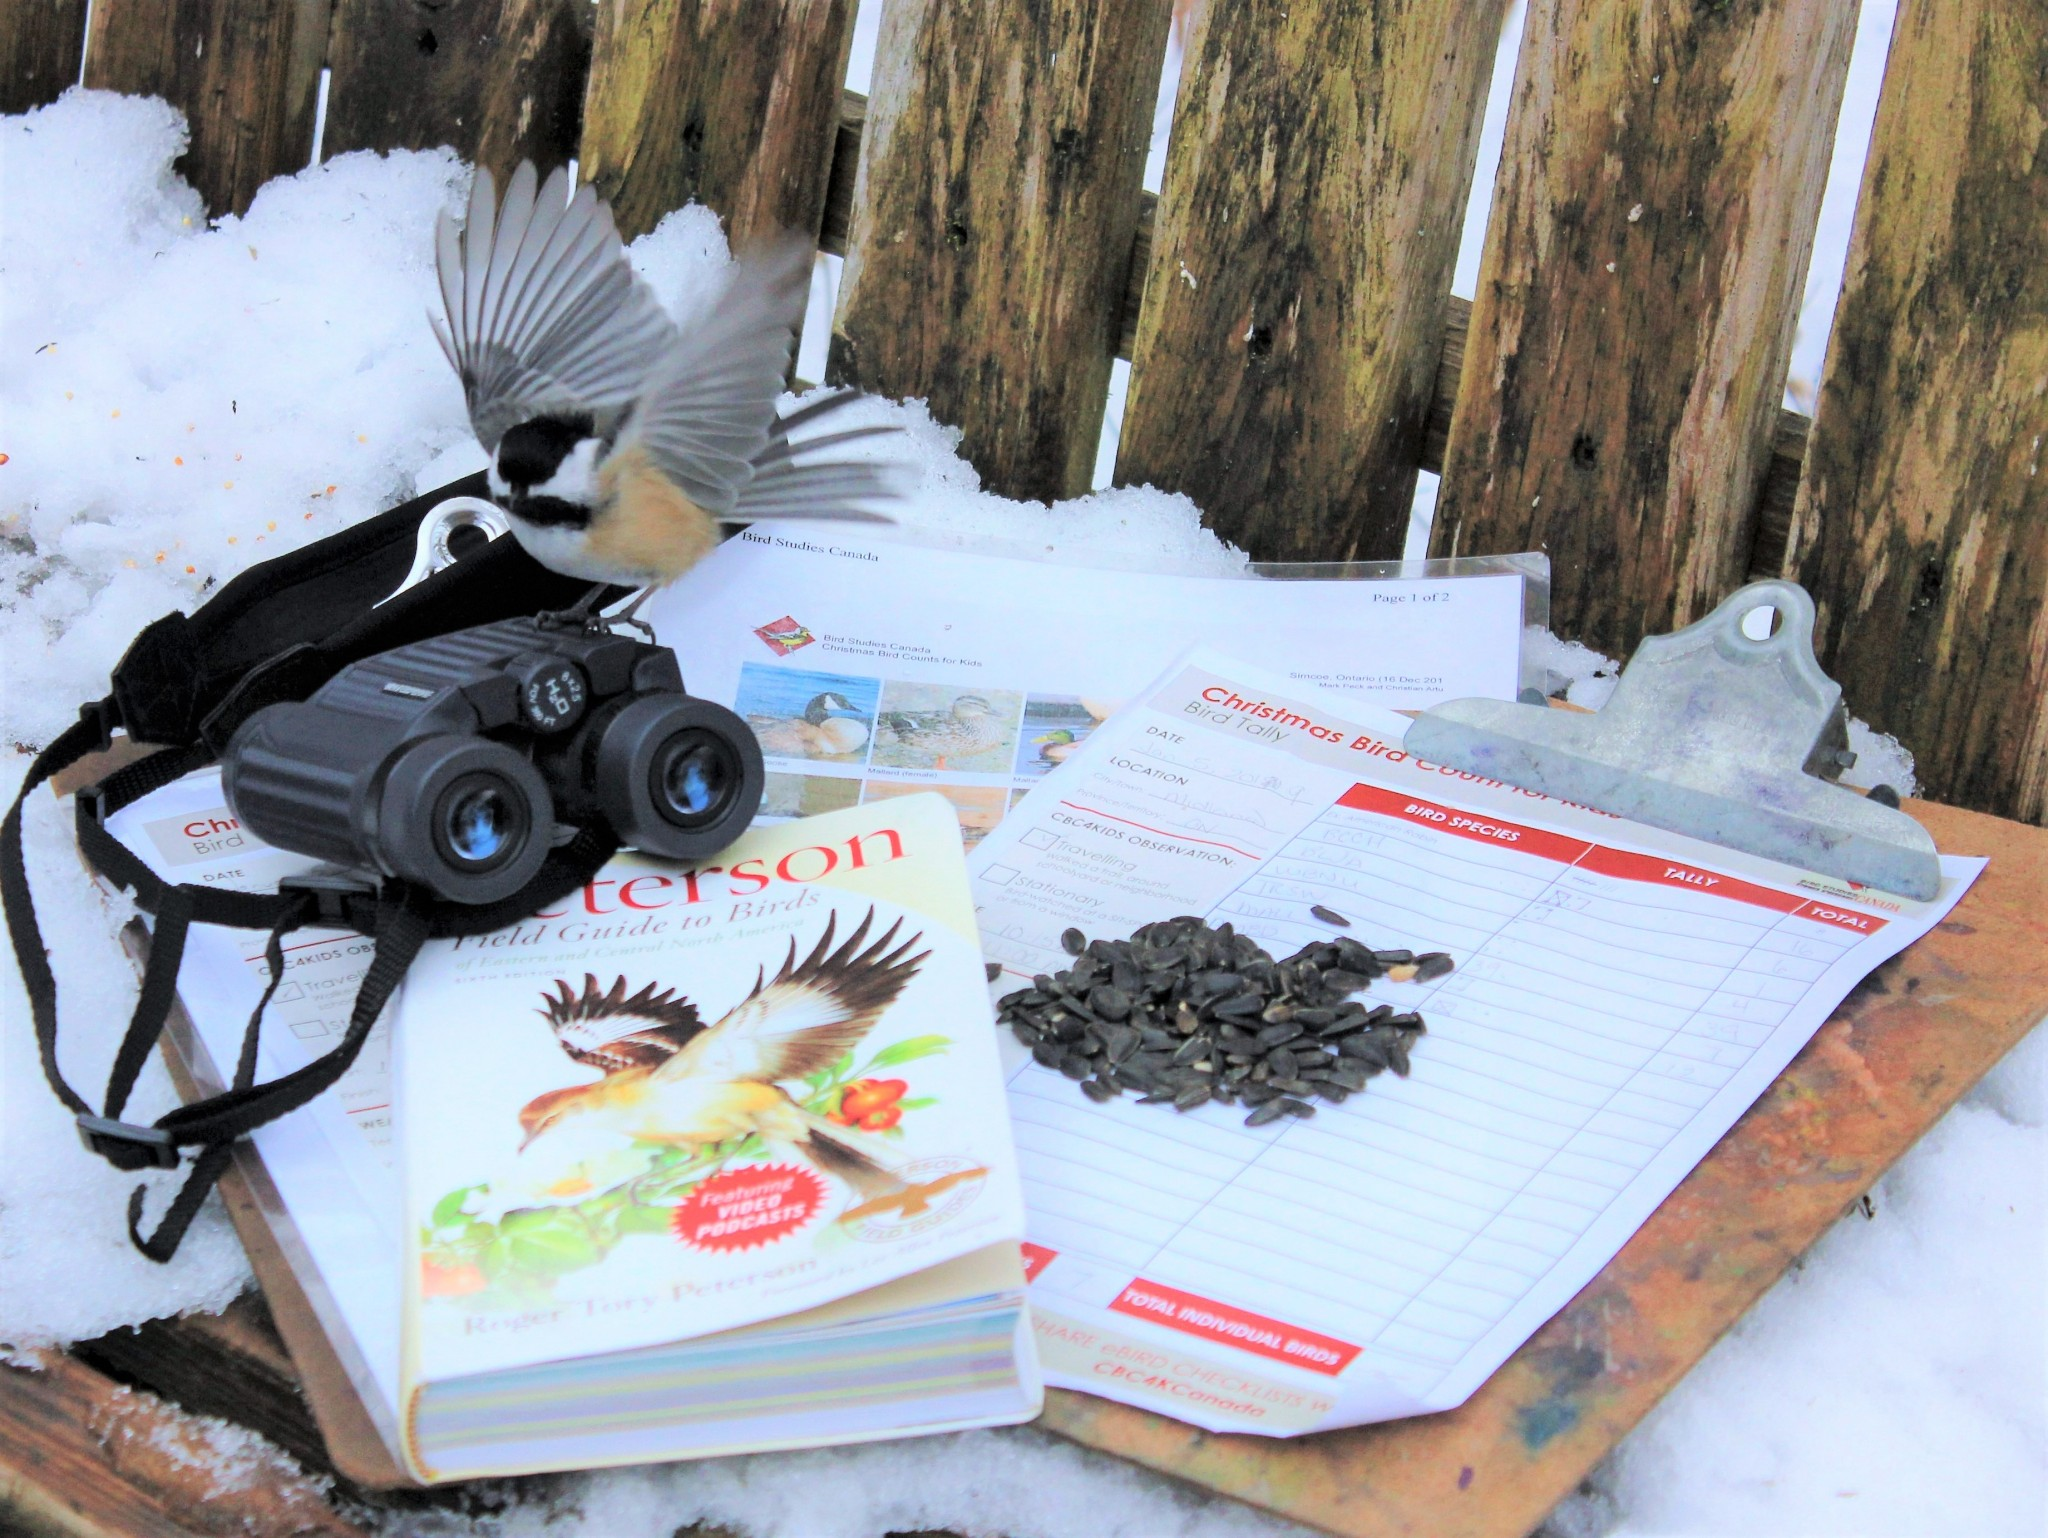 Chickadee Chirstmas Bird Count - CHRISTMAS BIRD COUNT